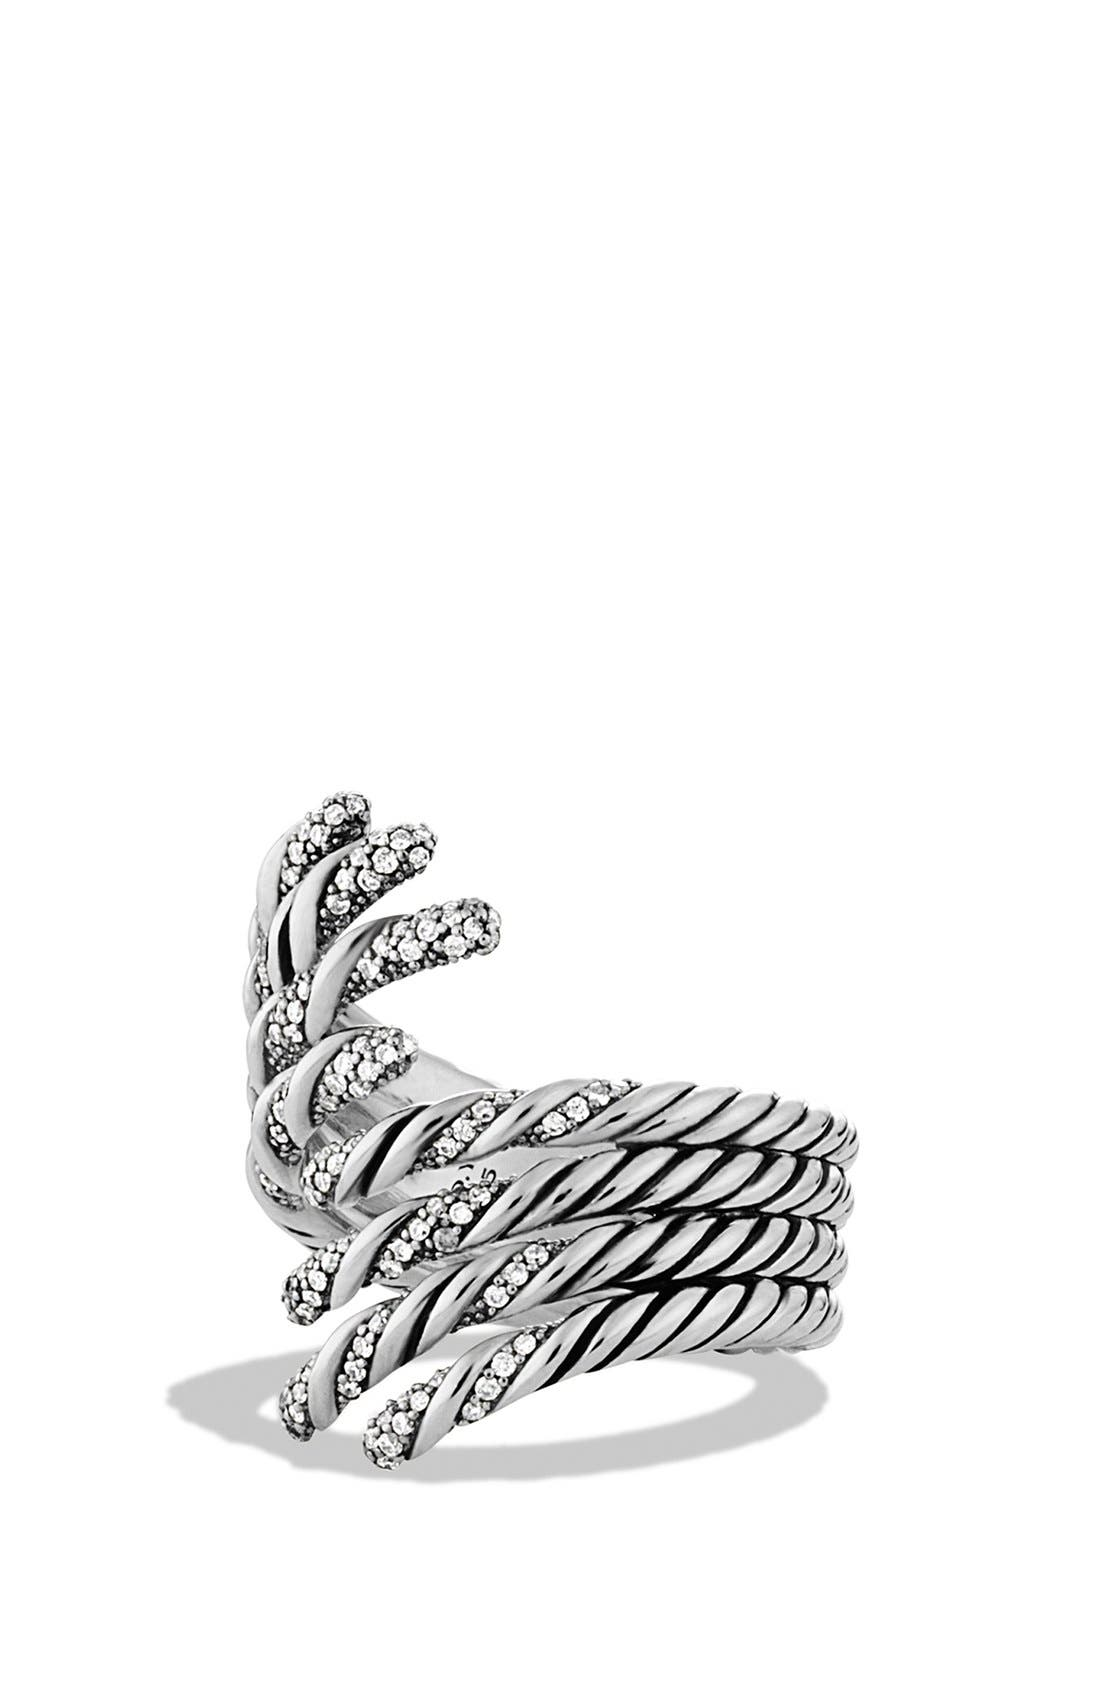 David Yurman 'Willow' Open Four-Row Ring with Diamonds